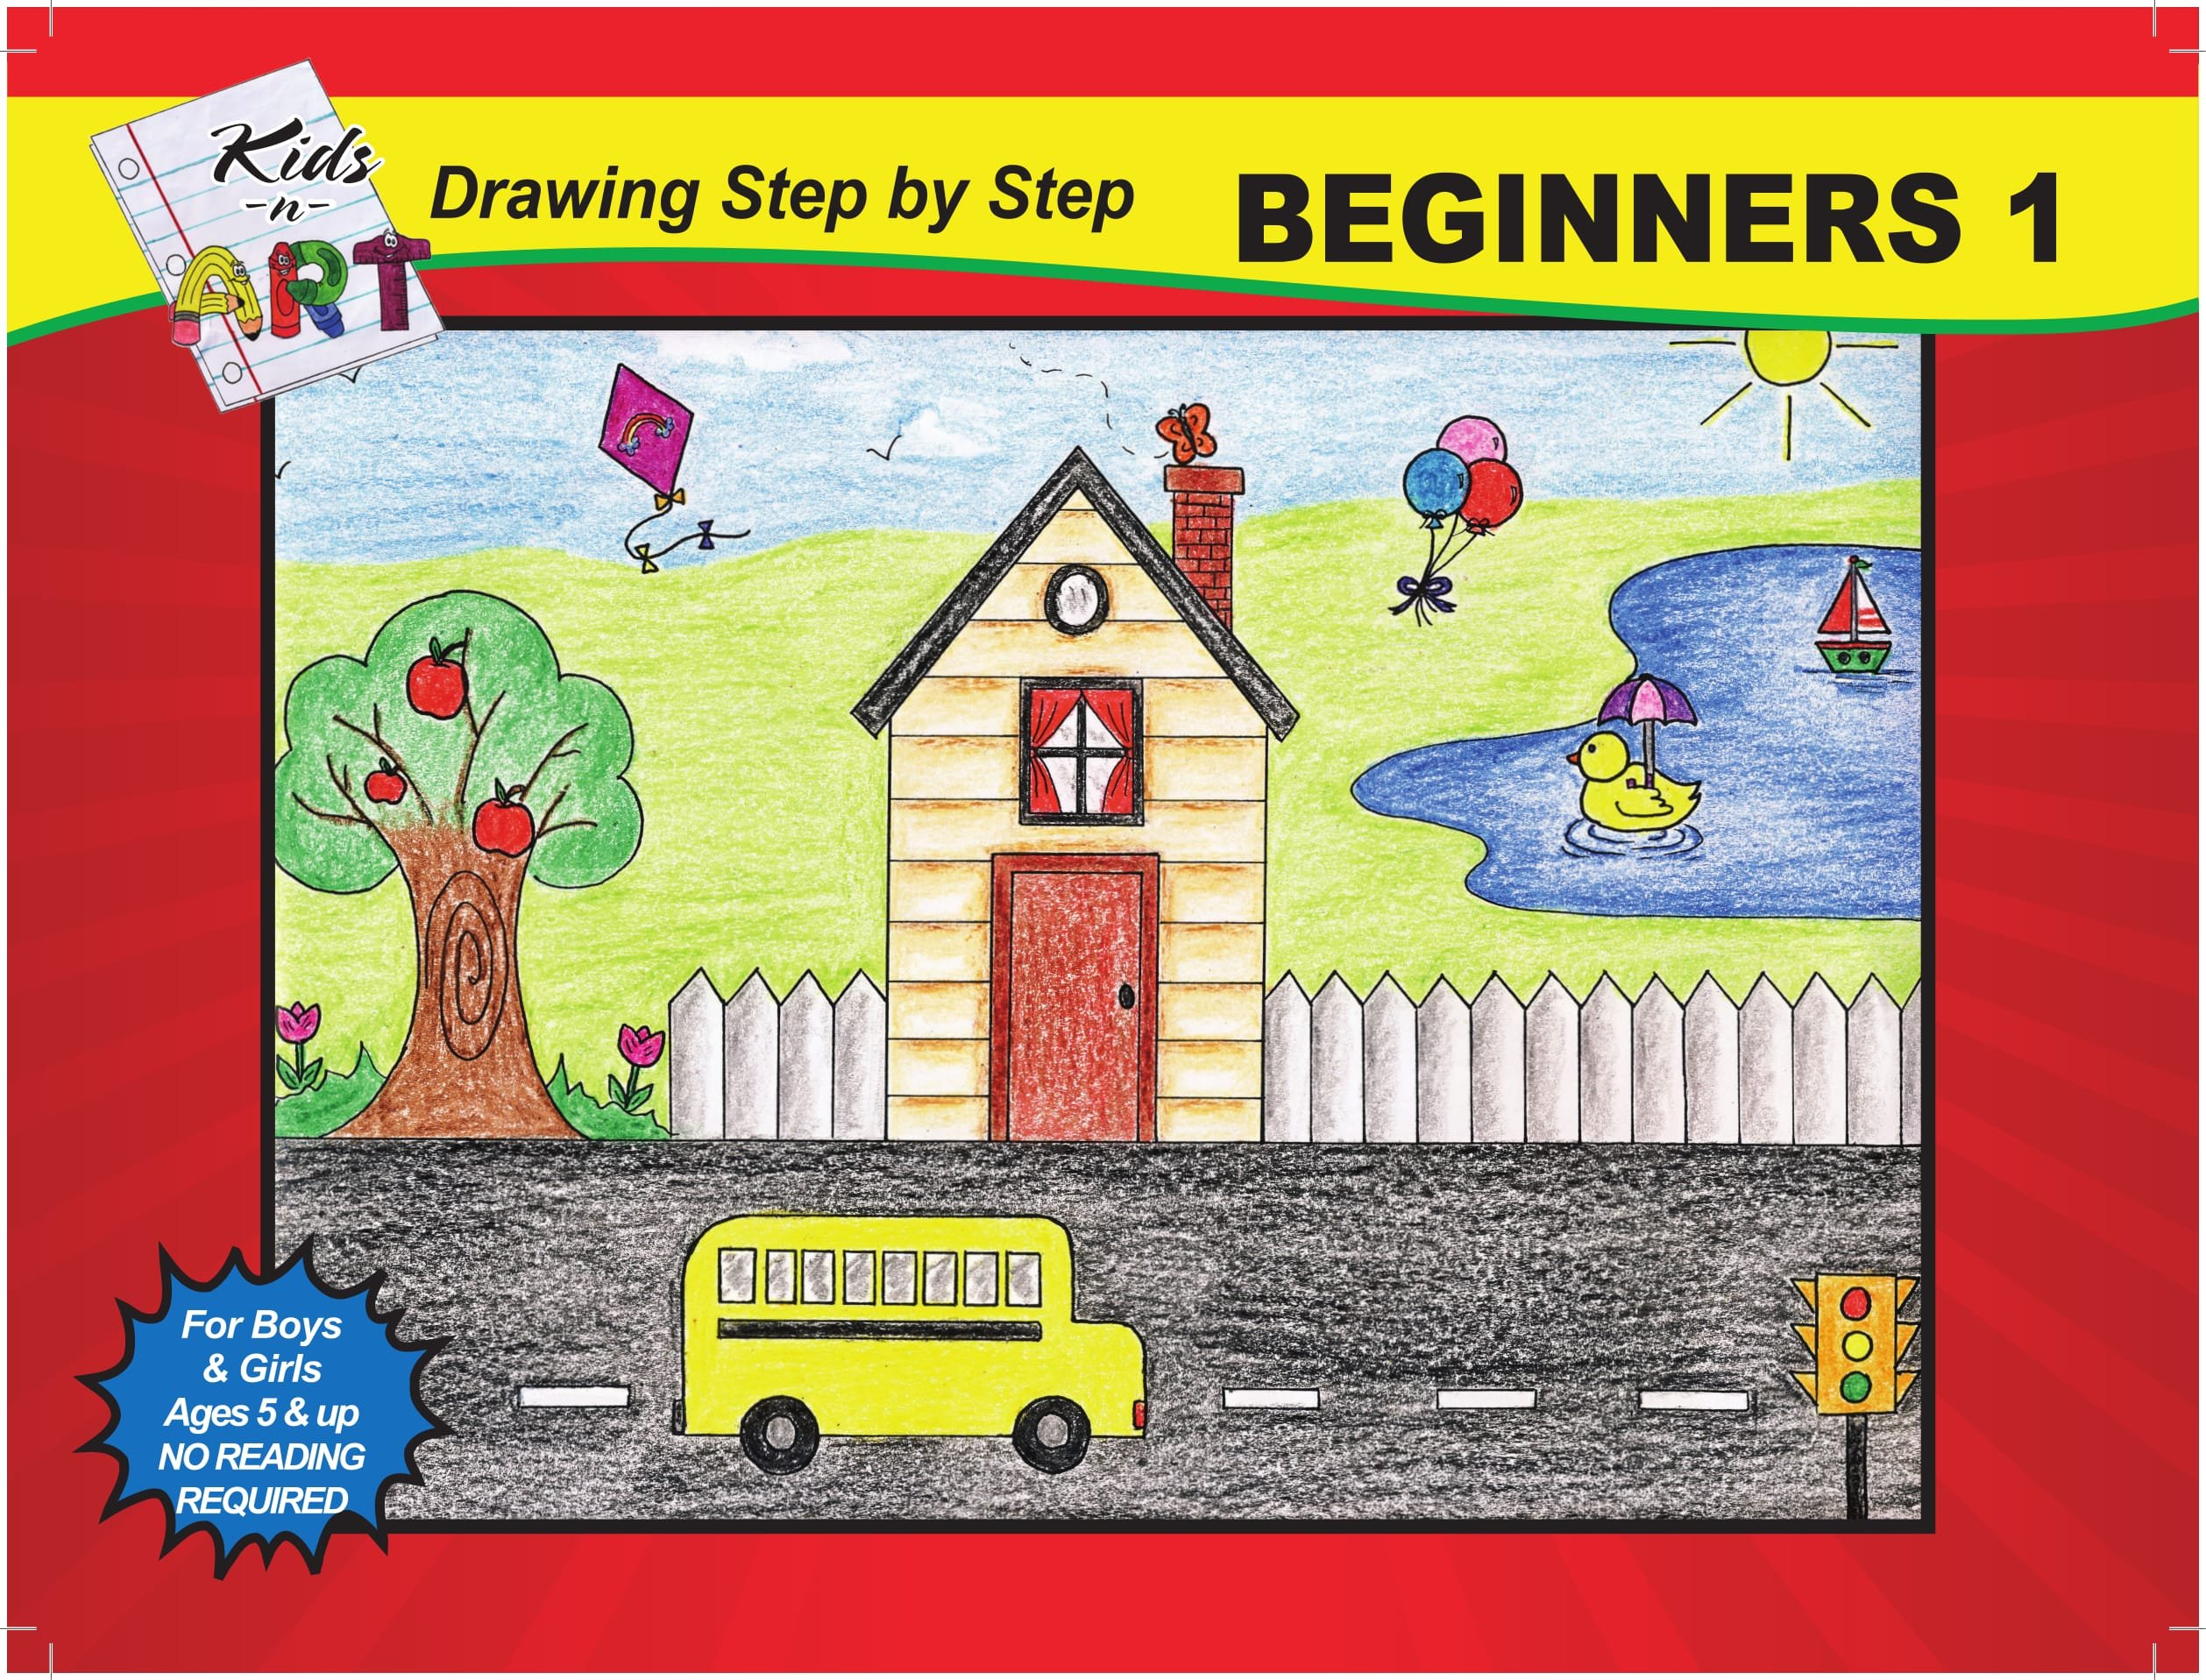 Step By Step Drawing Book For Kids How To Draw With Simple Steps